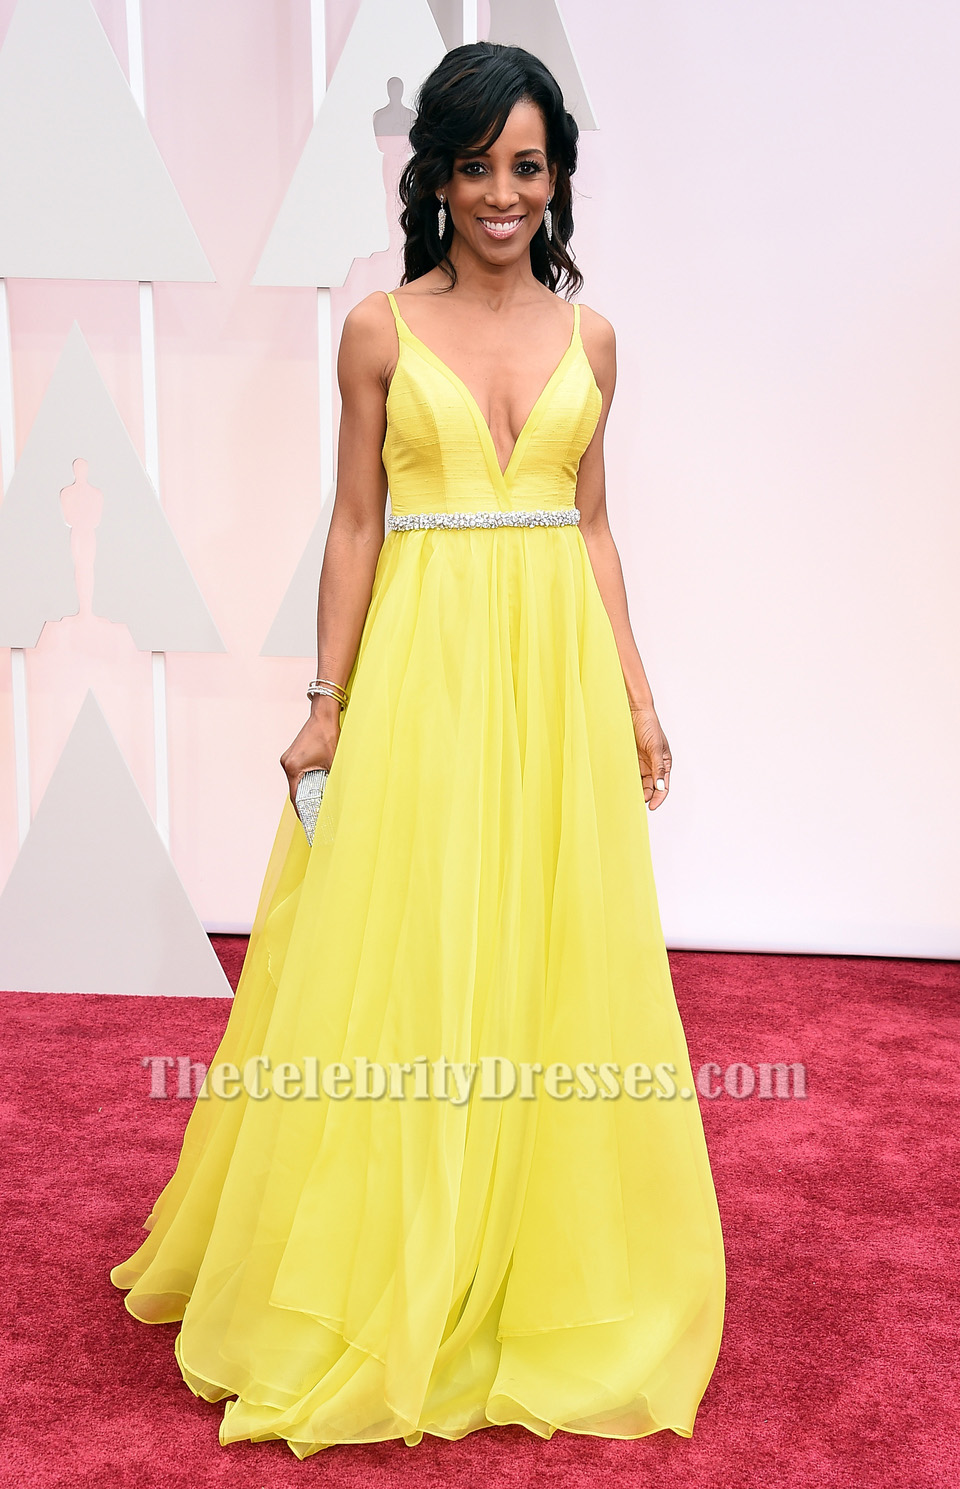 Shaun robinson oscar awards 2015 red carpet yellow chiffon prom dress thecelebritydresses - Dresses from the red carpet ...